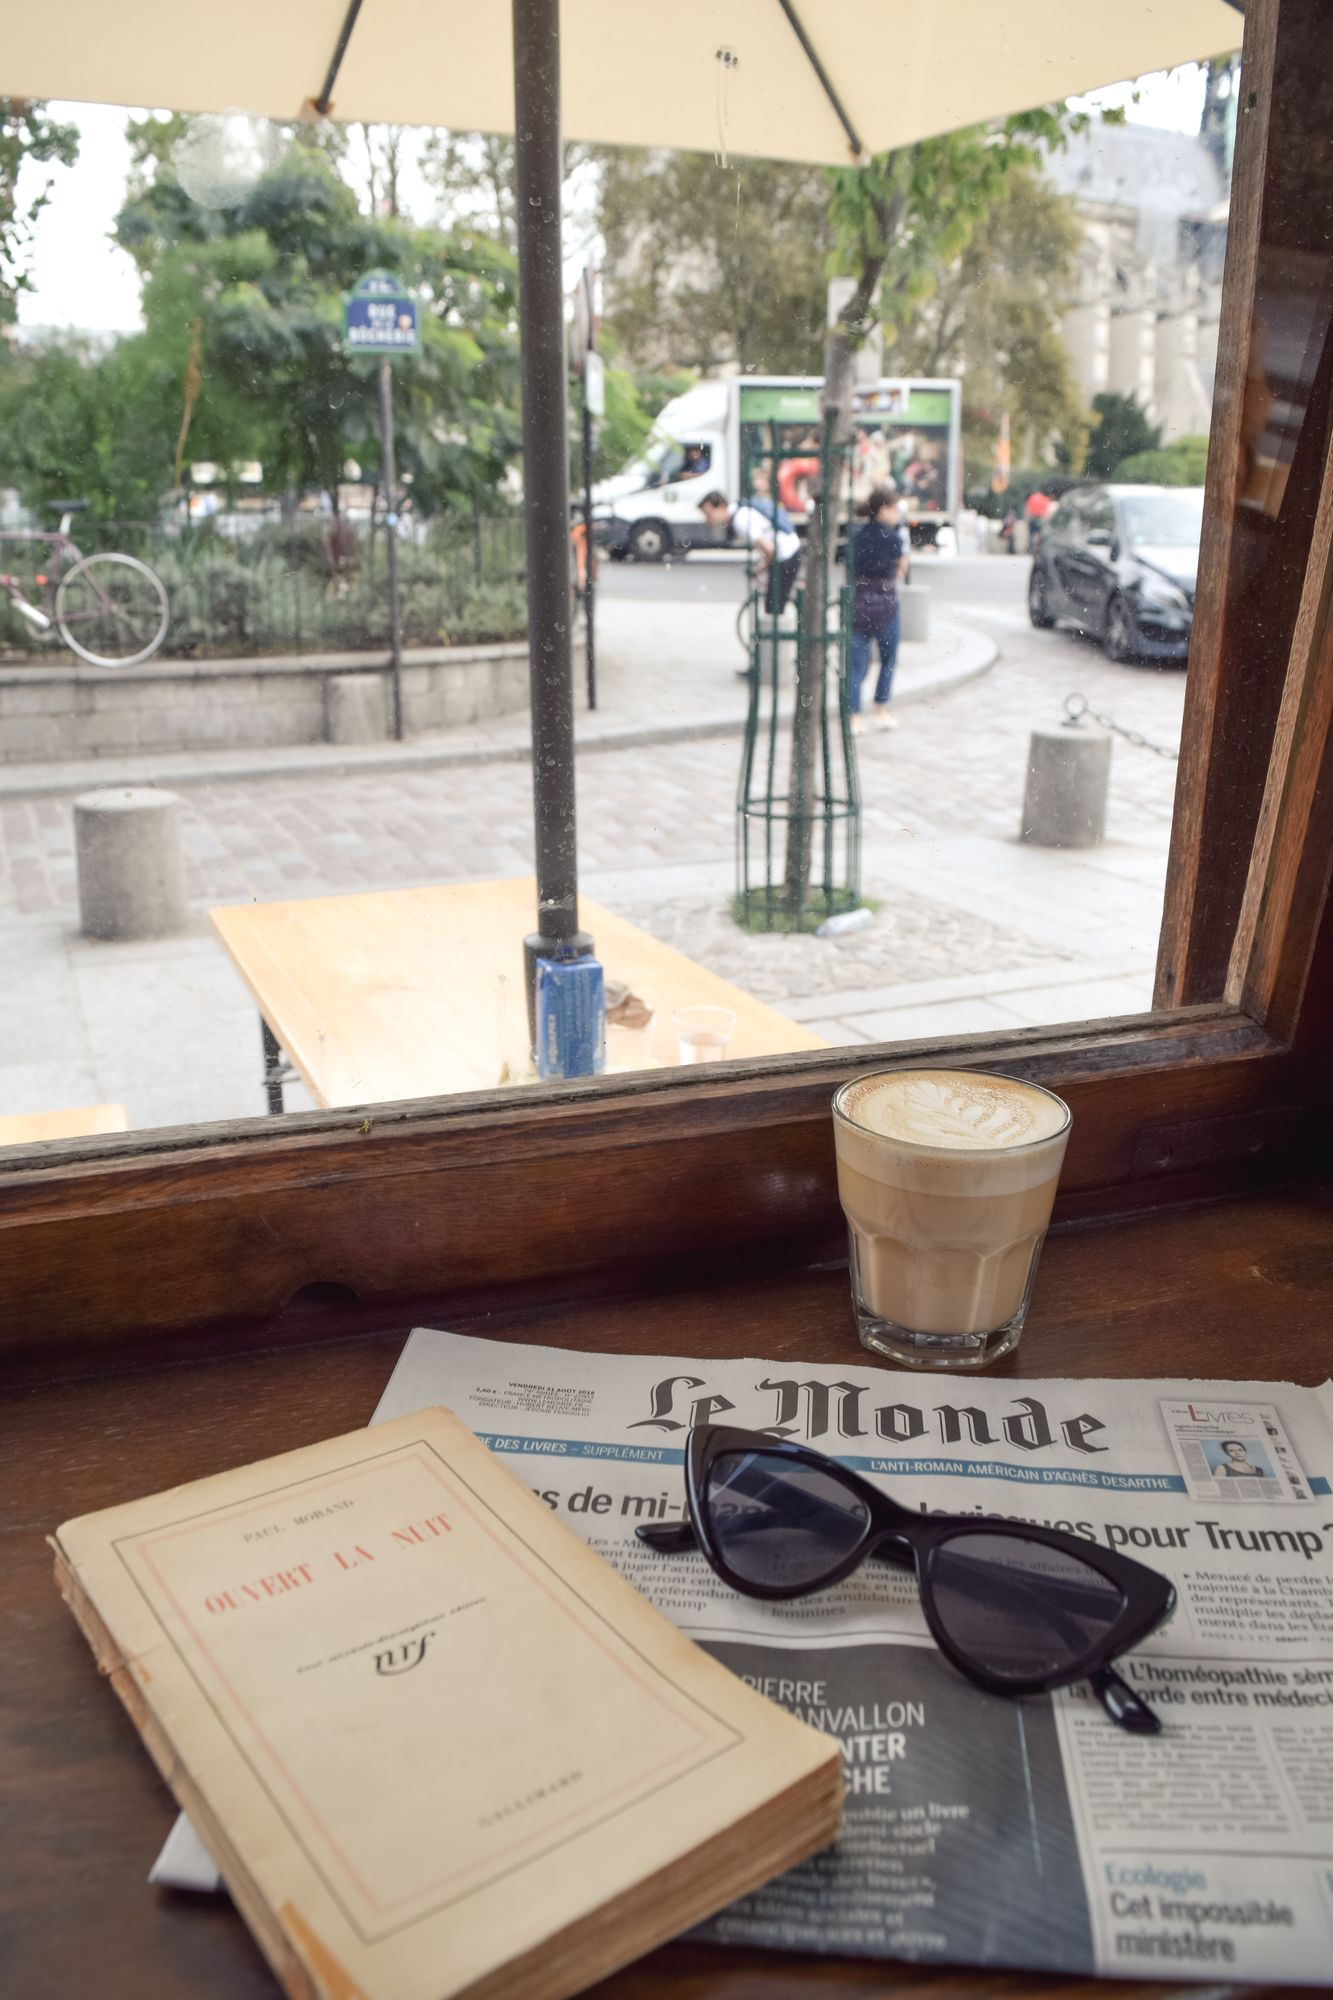 Shakespeare And Company Café, Paris